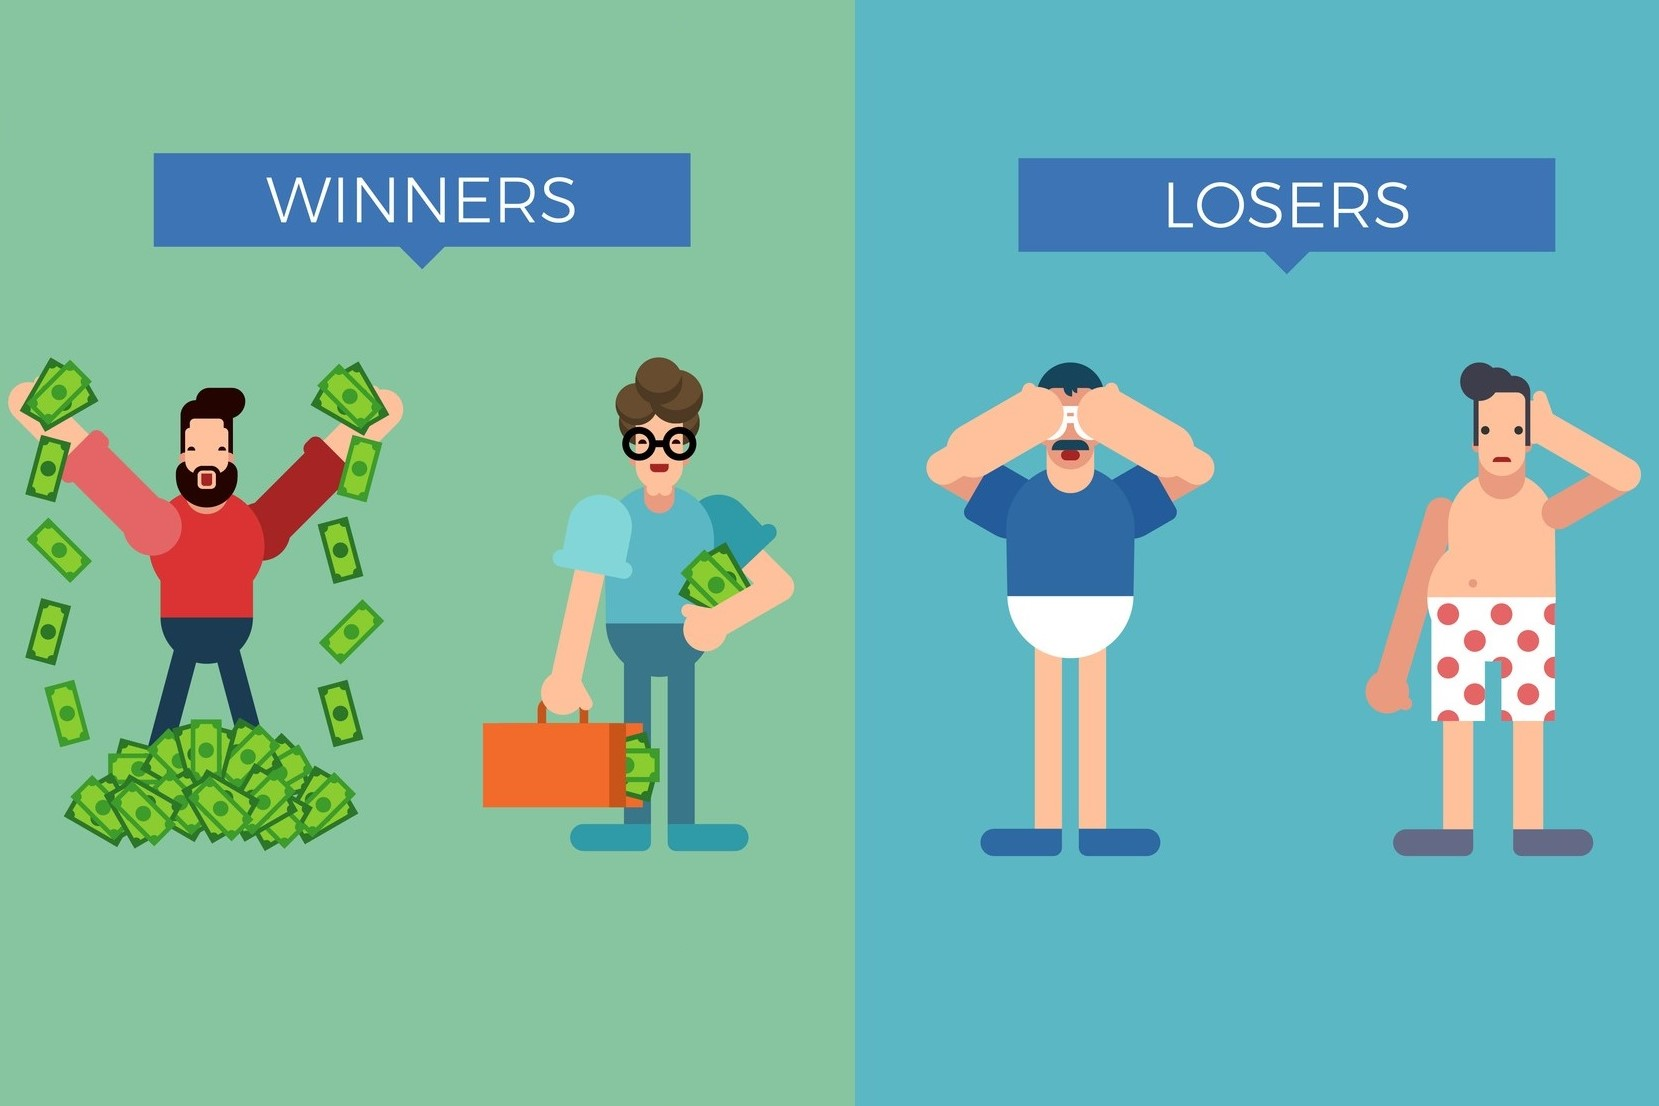 Crypto Coins: Top 5 Winners and Losers